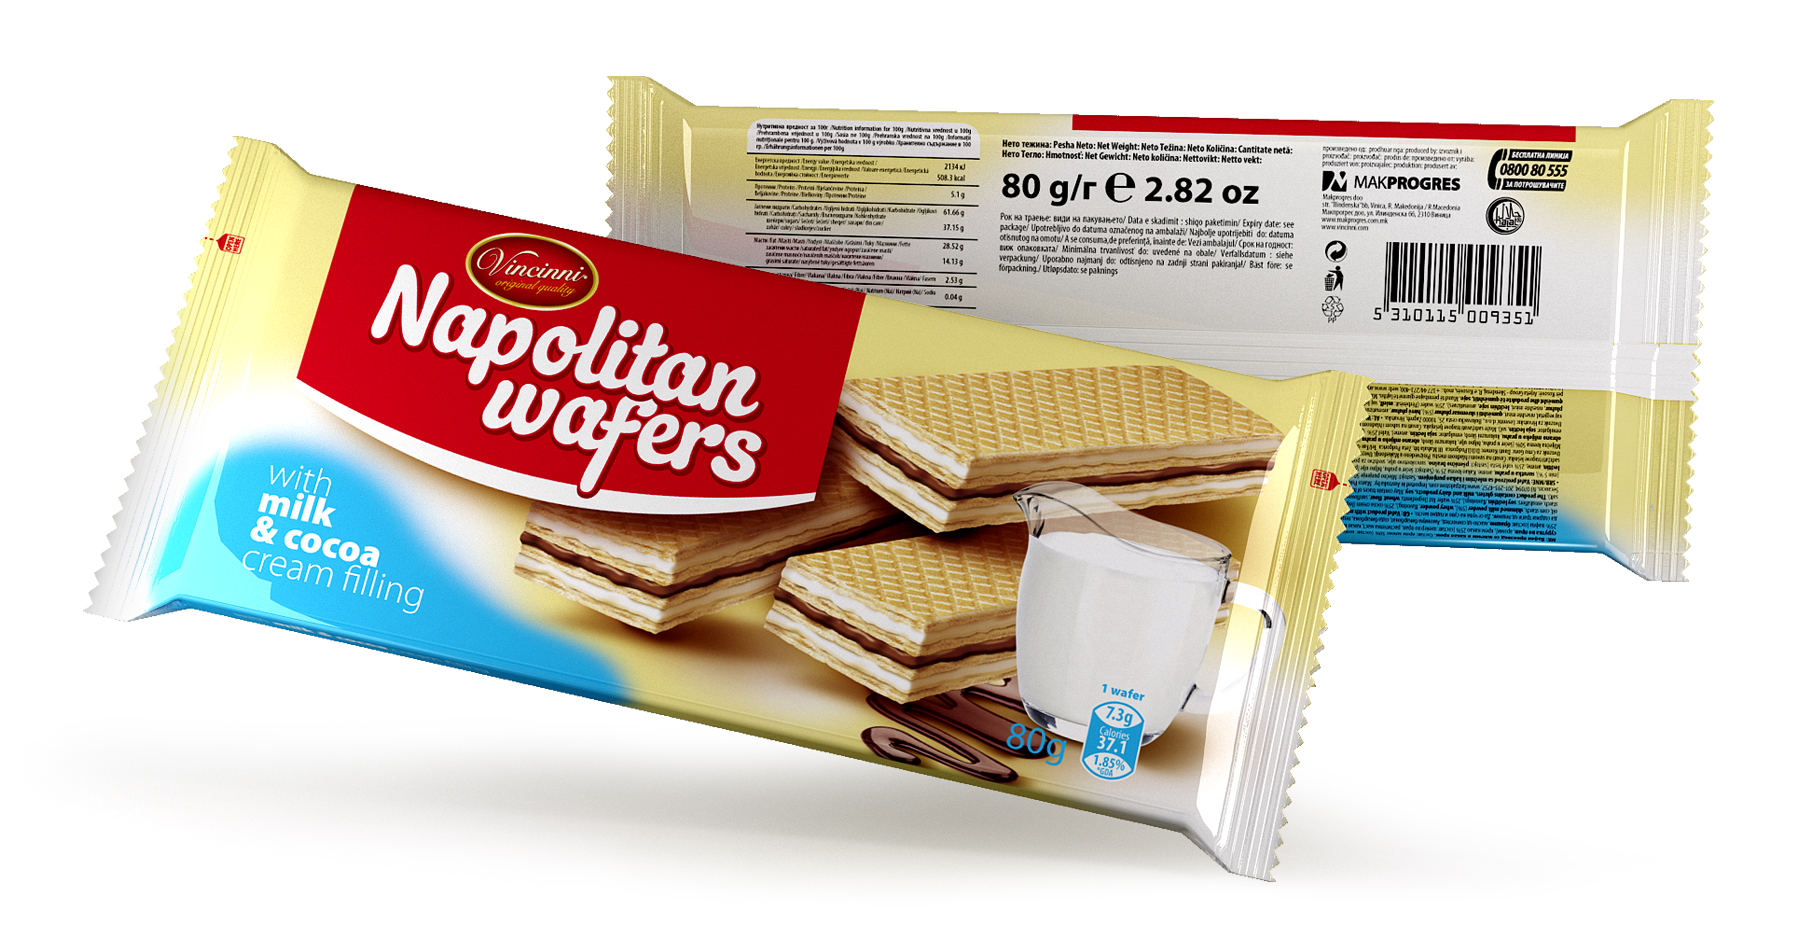 Napolitan wafers 80 g Milk & Cocoa